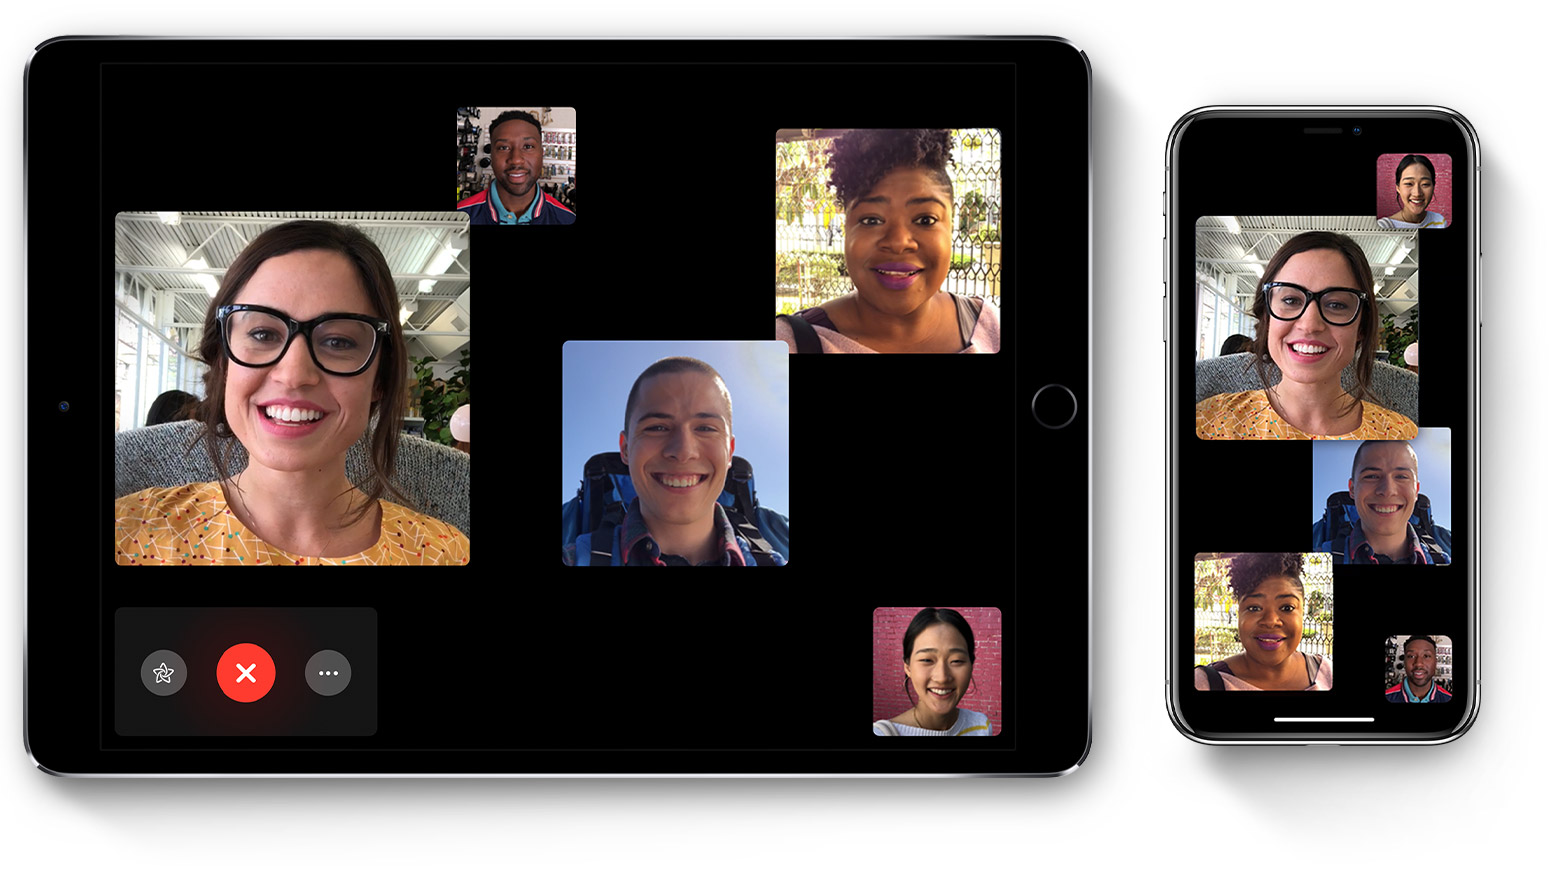 iPhone Users Get New Emoji and Group FaceTime After iOS 12.1 Update